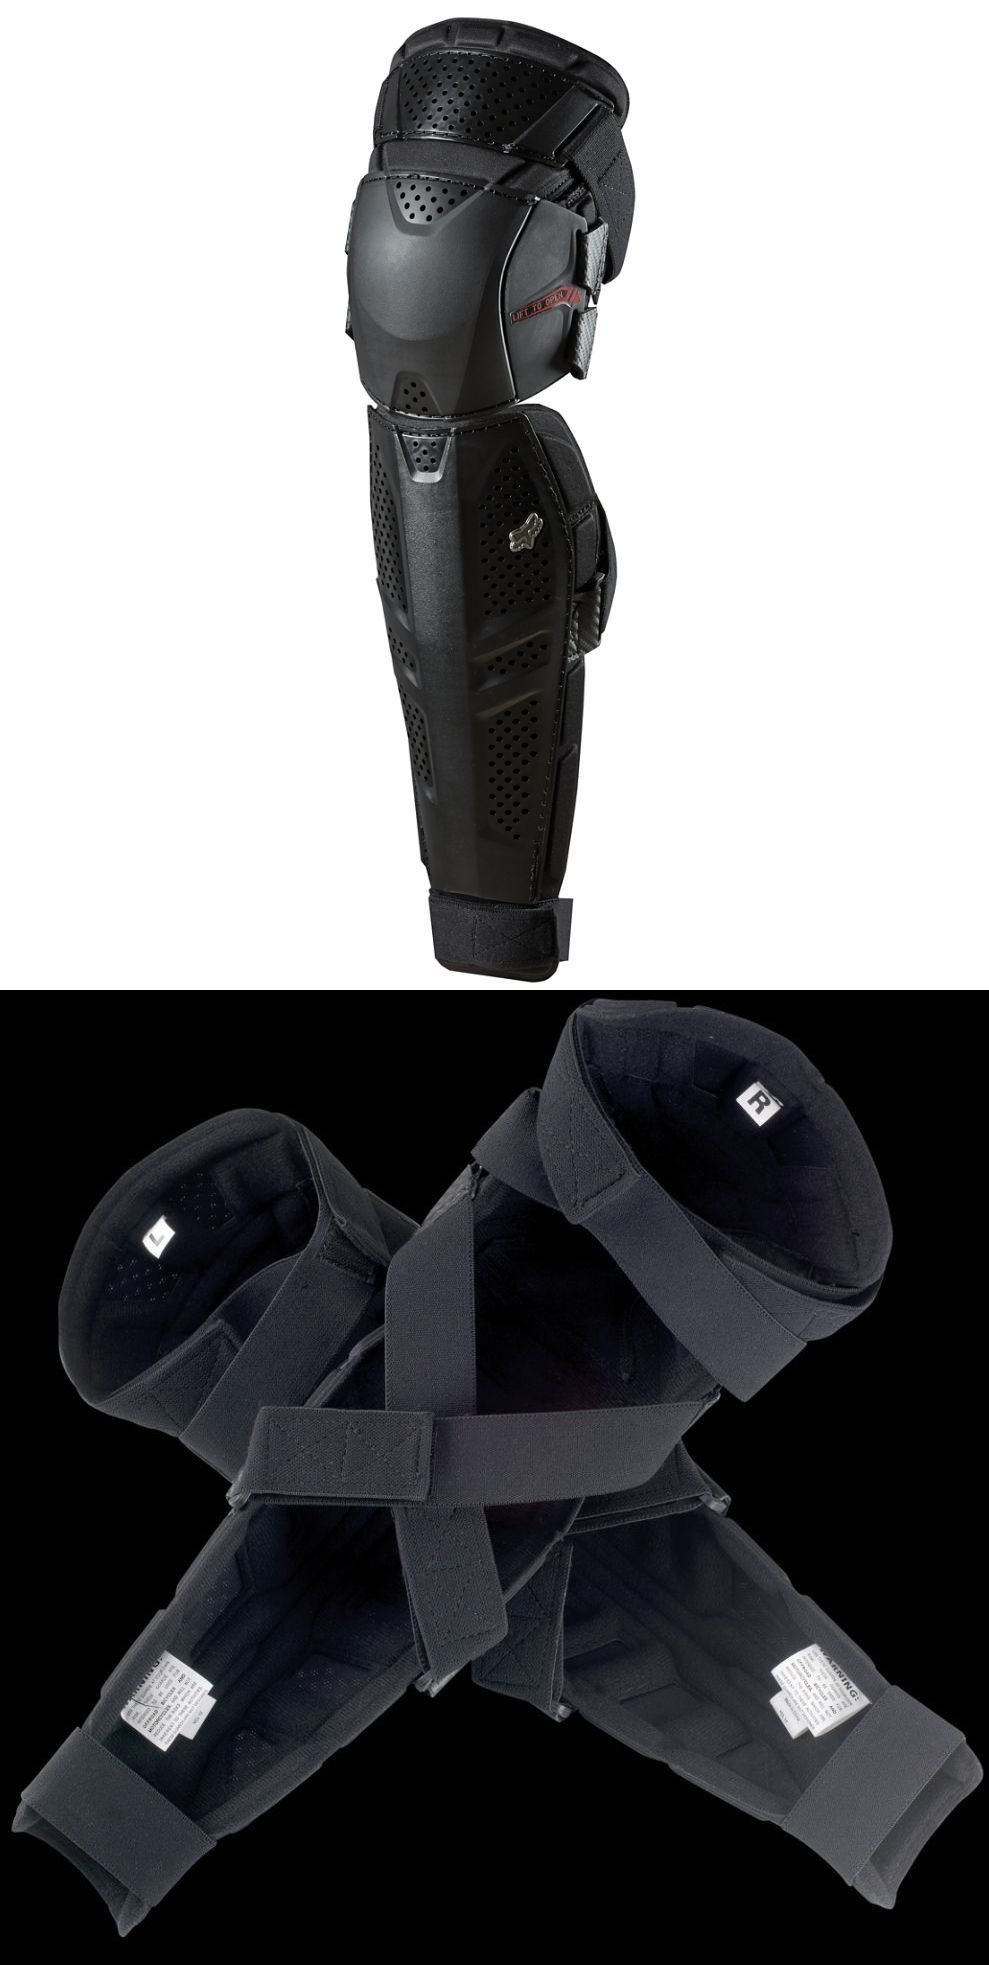 Protective Pads And Armor 42326 New Fox Racing Launch Pro Knee